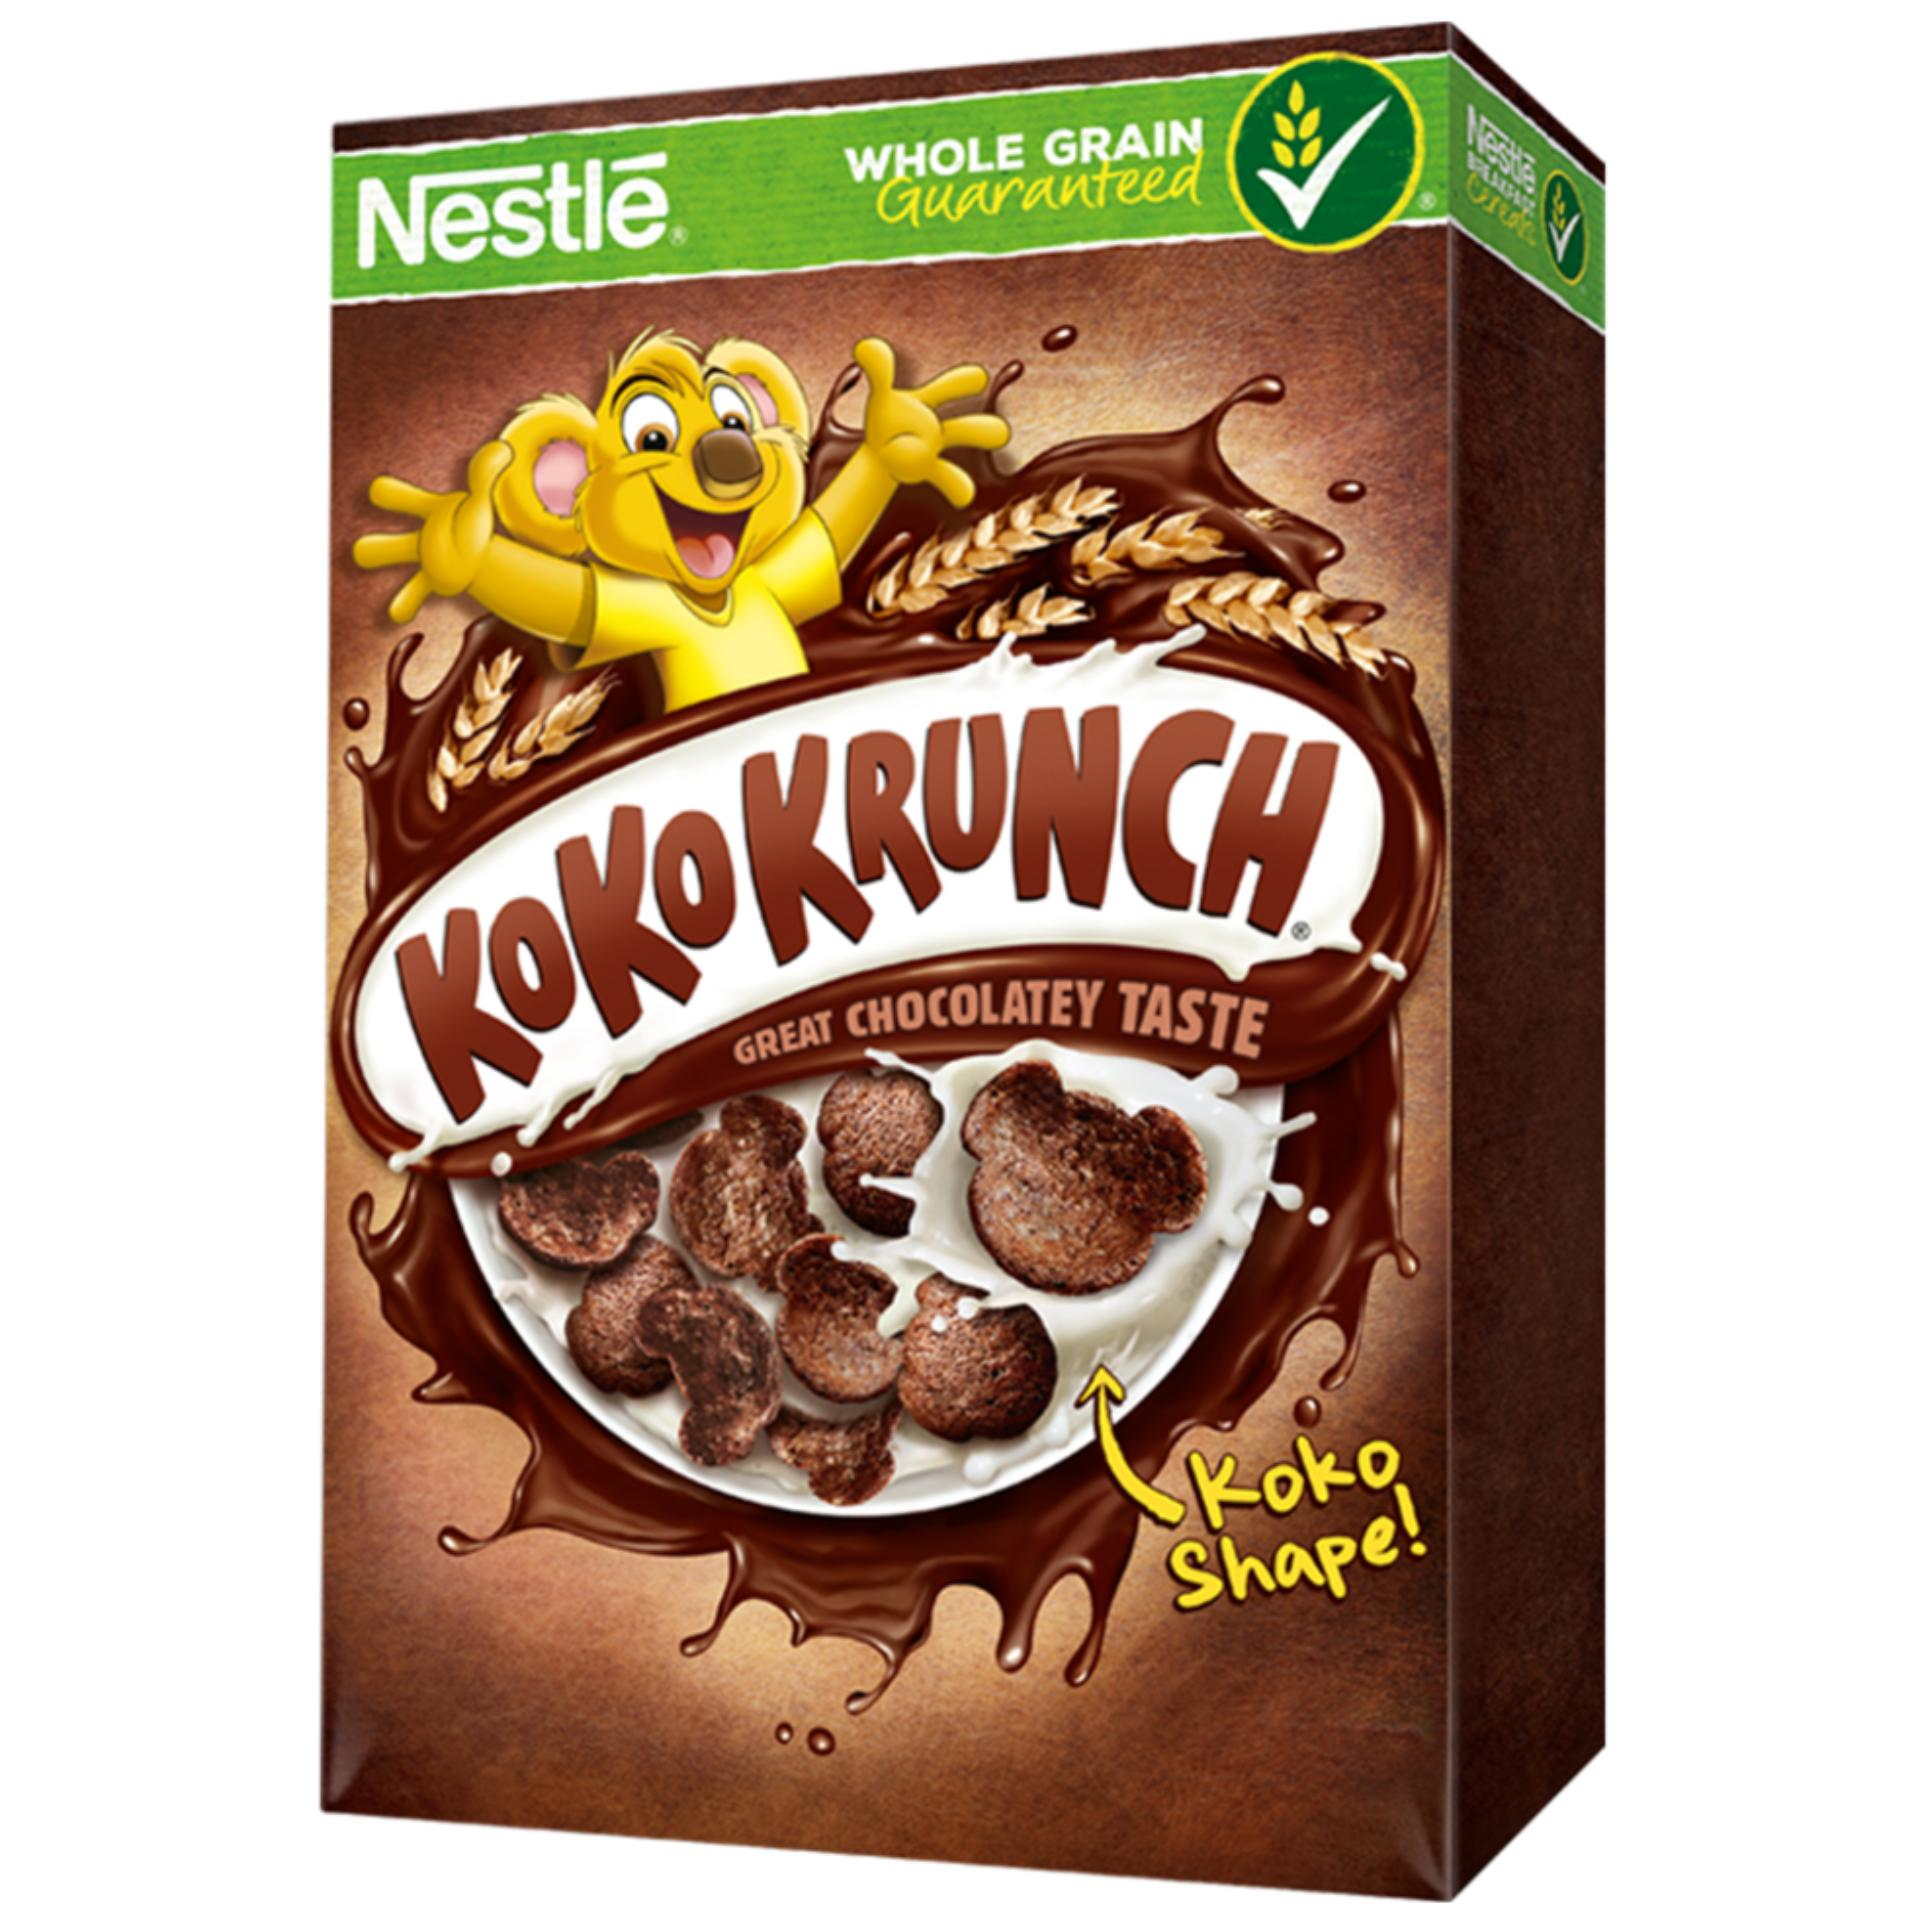 Koko krunch philippines koko krunch price list breakfast cereal koko krunch koko shapes 500g ccuart Choice Image